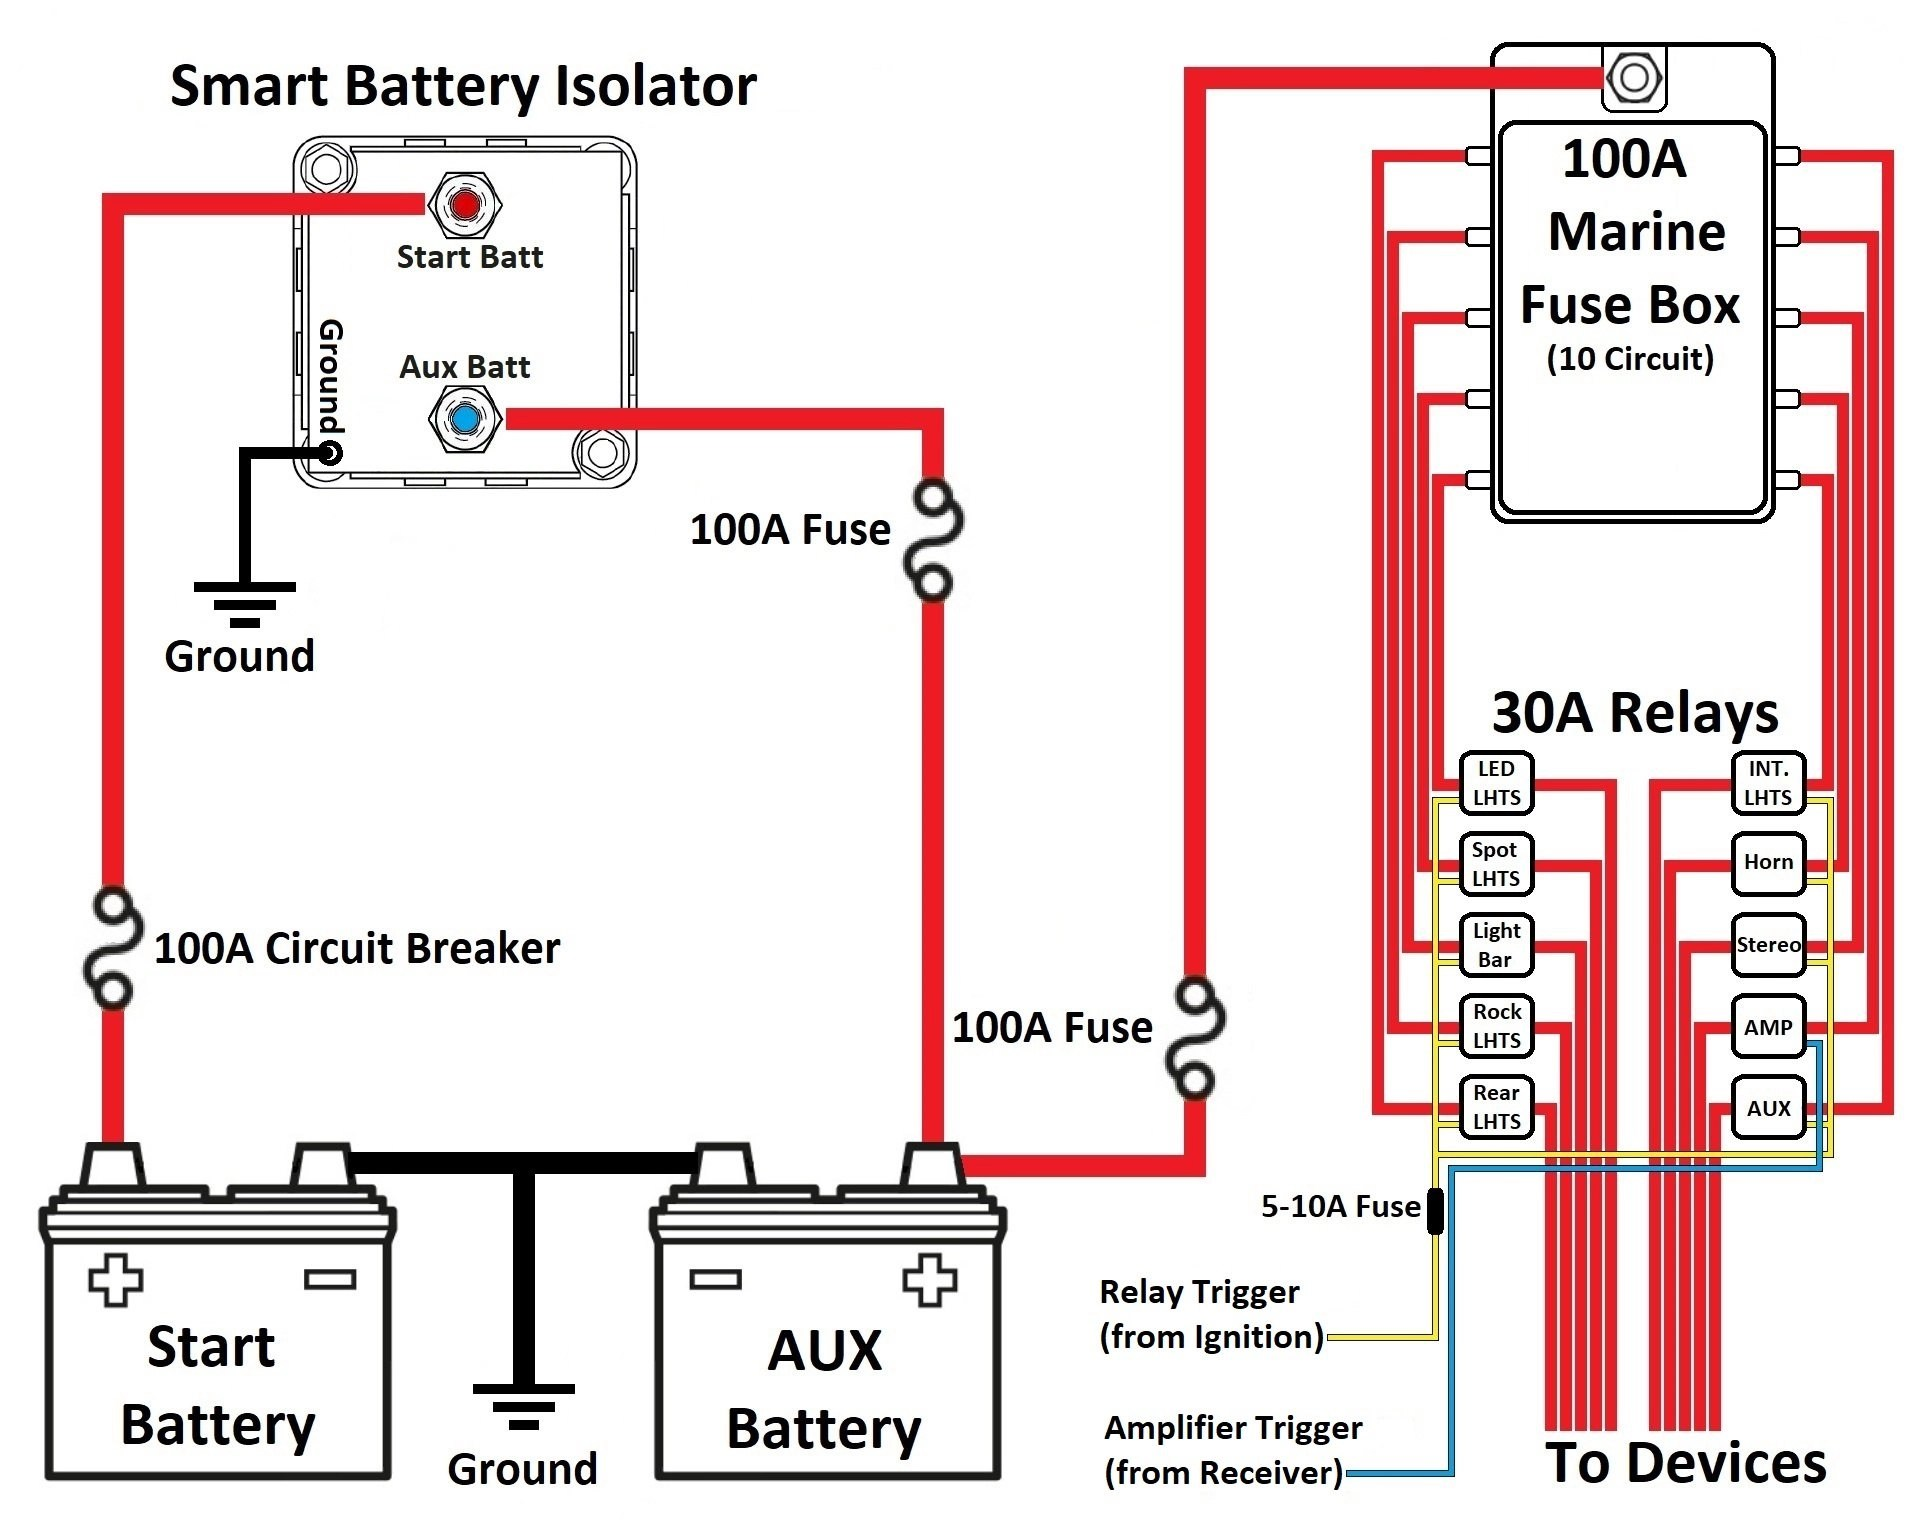 hight resolution of wiring diagram battery data schematic diagram battery management system schematic diagram battery system diagram